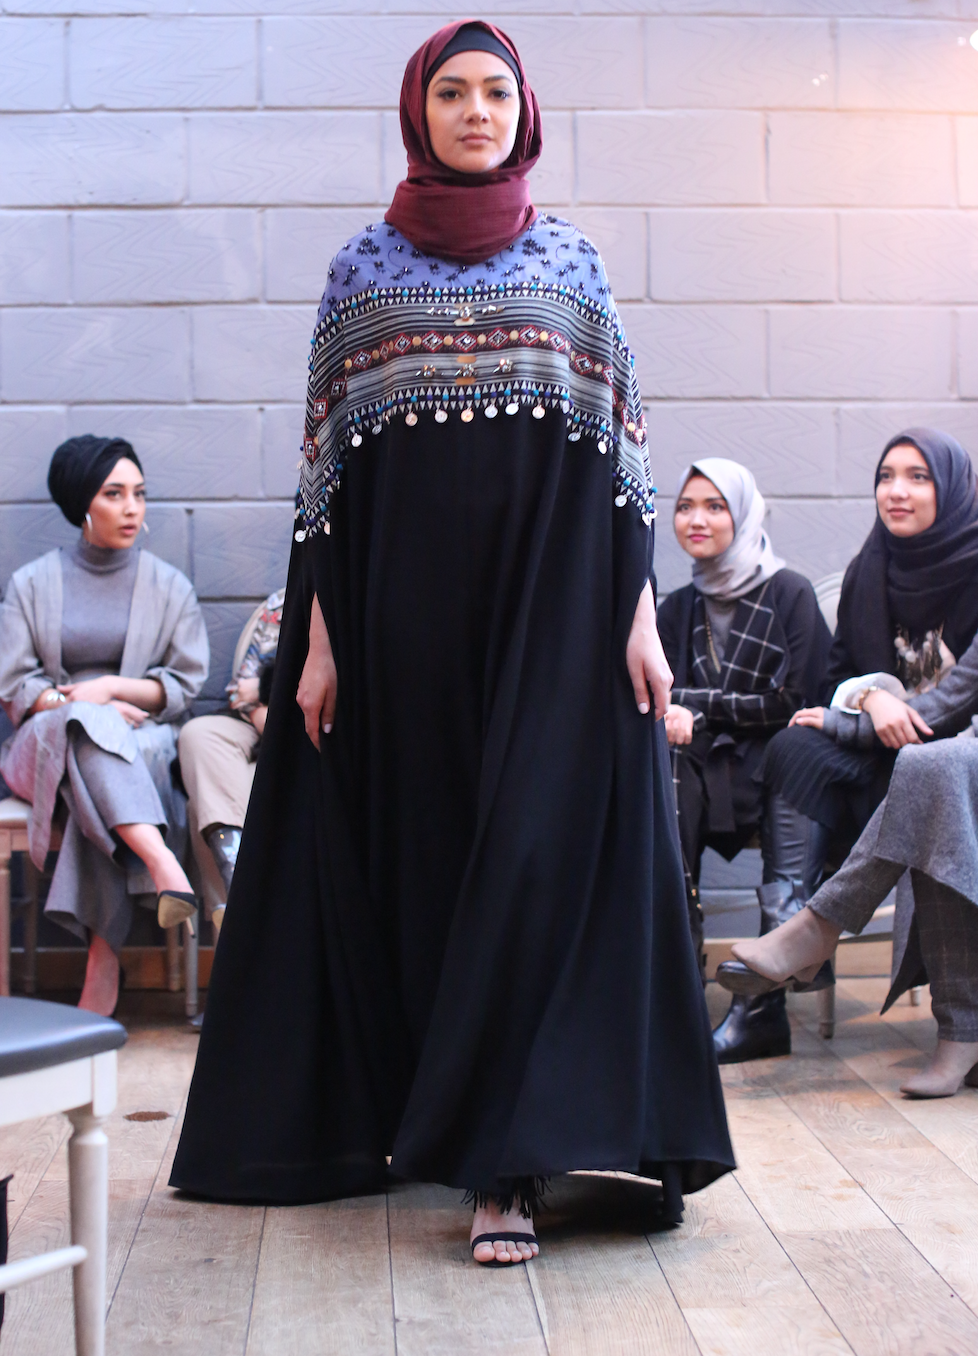 Modest Fashion Or Fashioning Modesty? HijUp Unveiled At